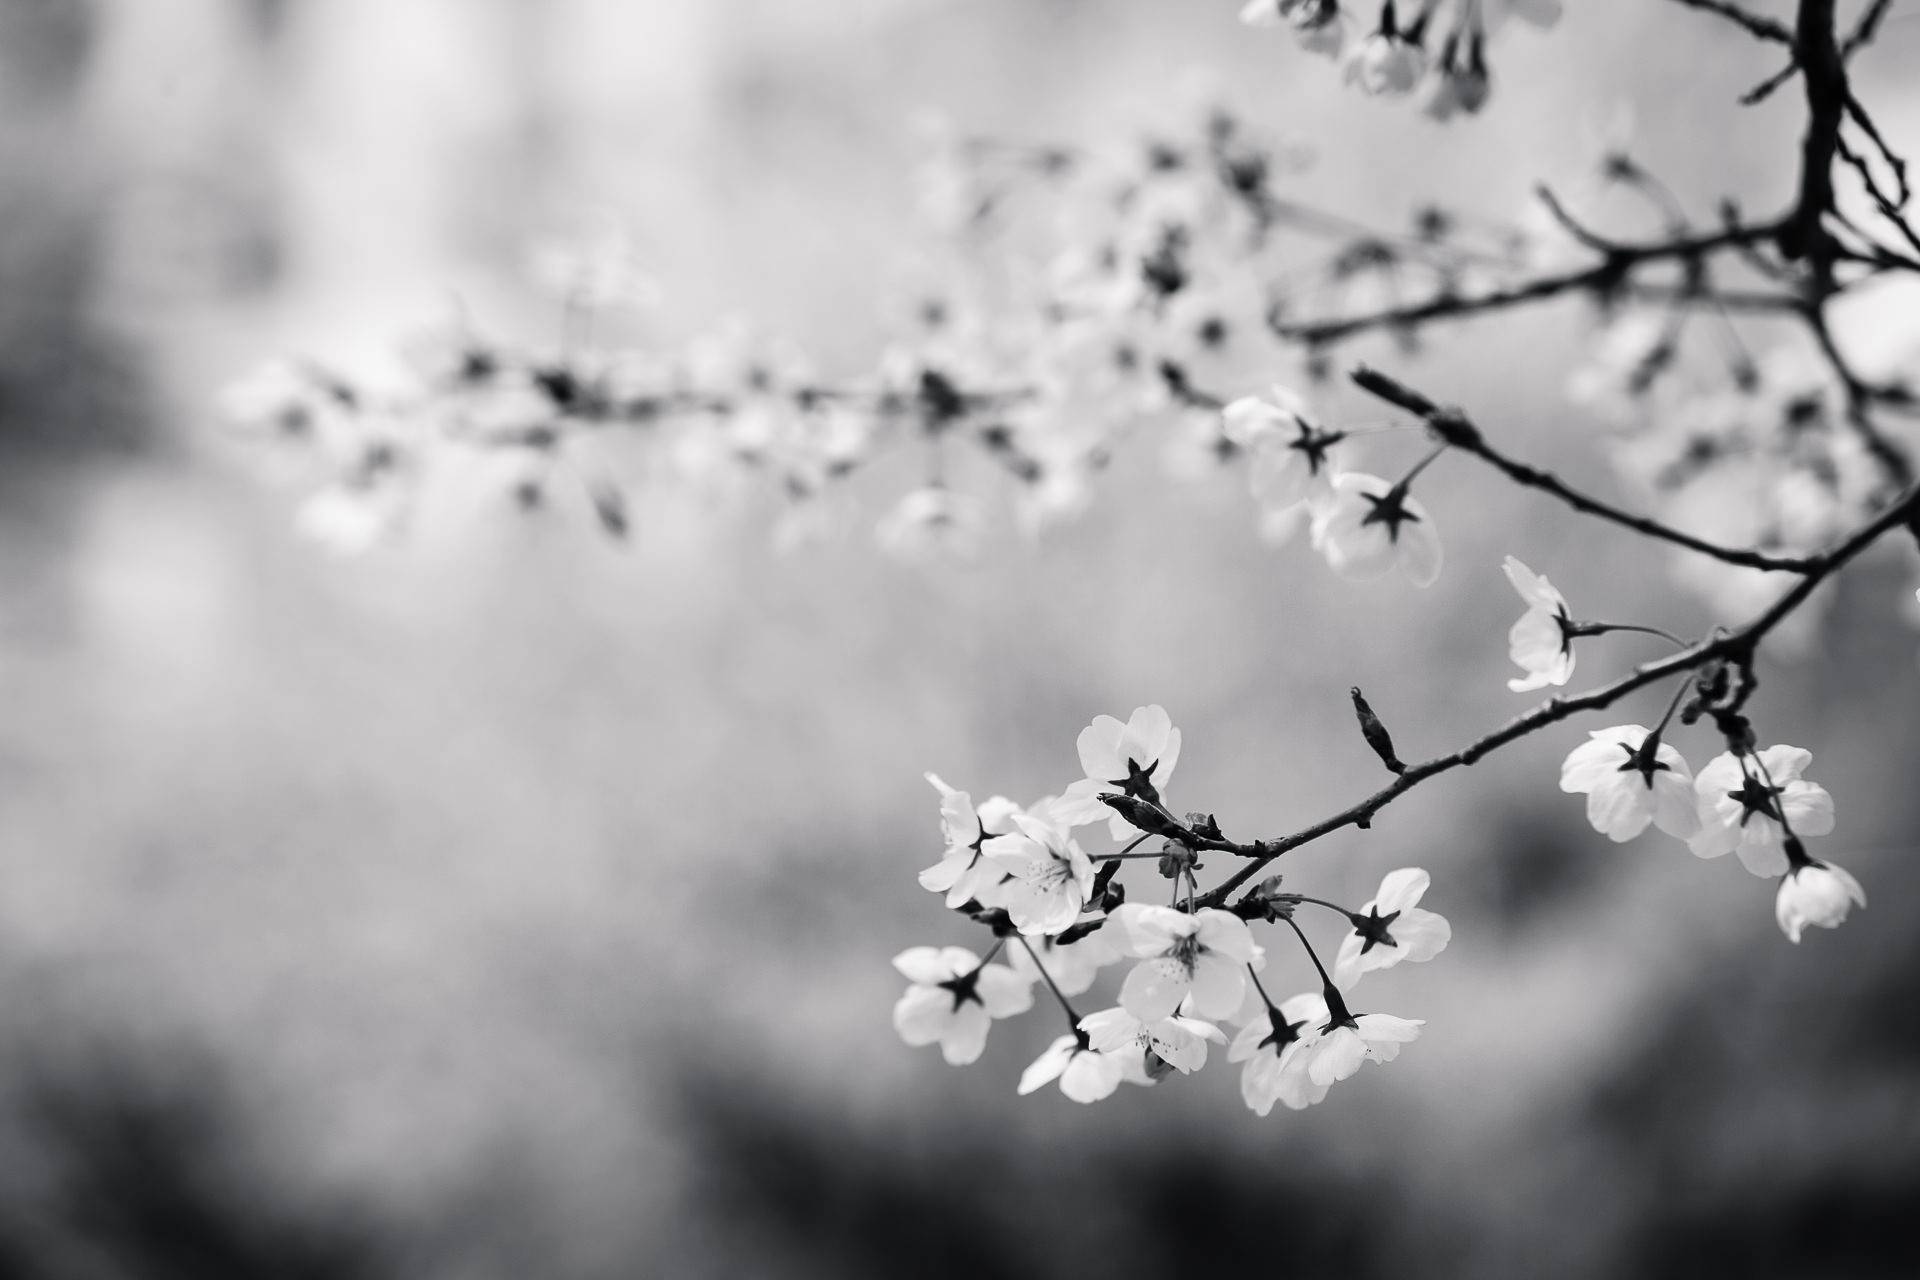 Free stock photo of black-and-white, flowers, branch, cherry blossom